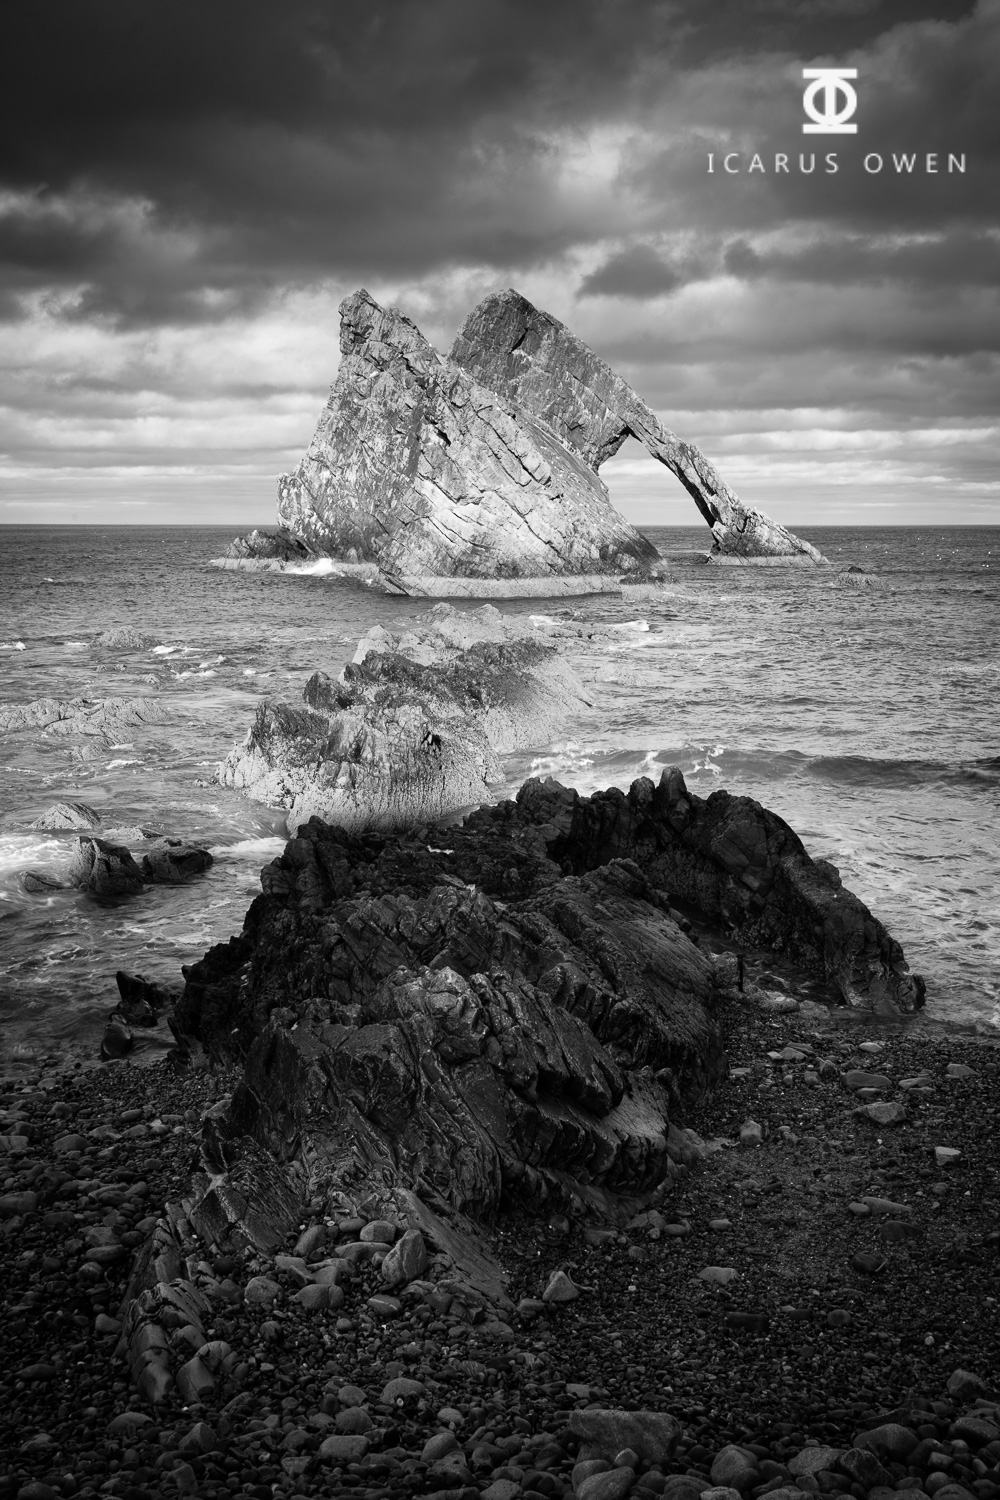 Bow Fiddle Rock - Icarus Owen - Mono.jpg